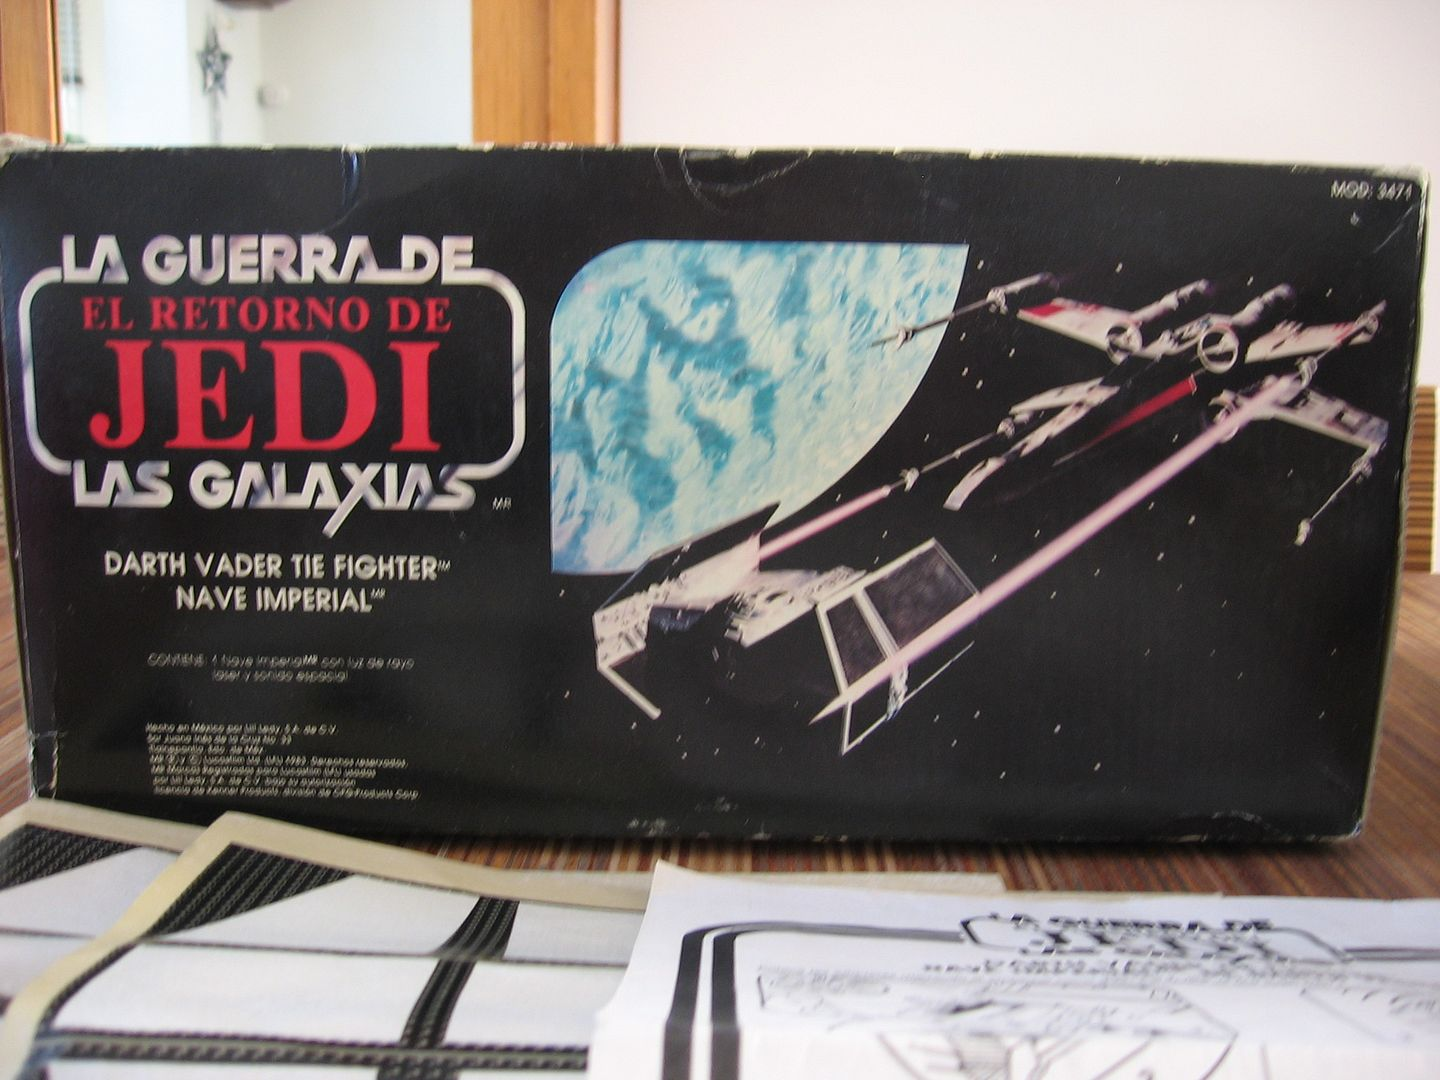 PROJECT OUTSIDE THE BOX - Star Wars Vehicles, Playsets, Mini Rigs & other boxed products  - Page 7 IMG_7264_zpsffc67368